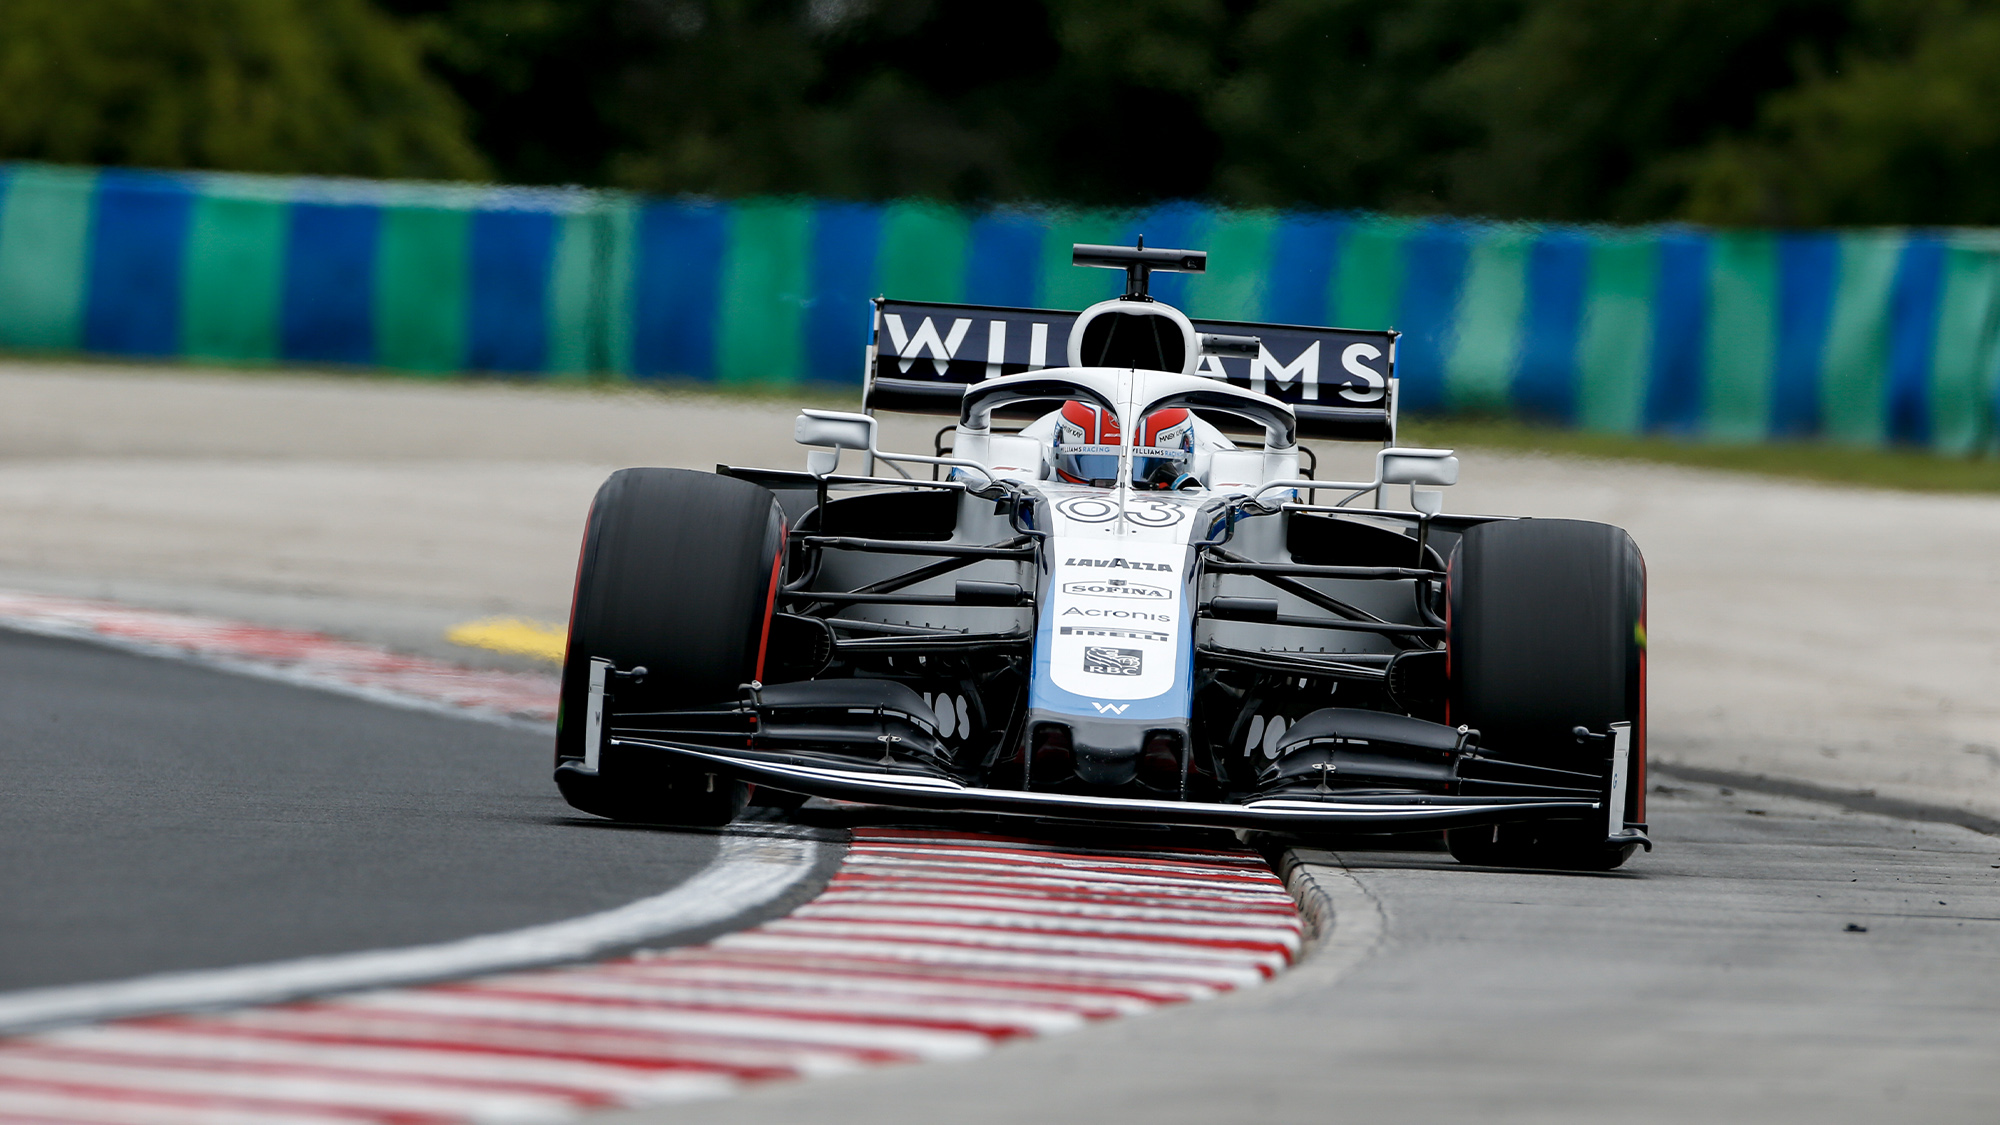 George Russell's Williams rides the kerb during qualifying for the 2020 F1 Hungarian Grand Prix